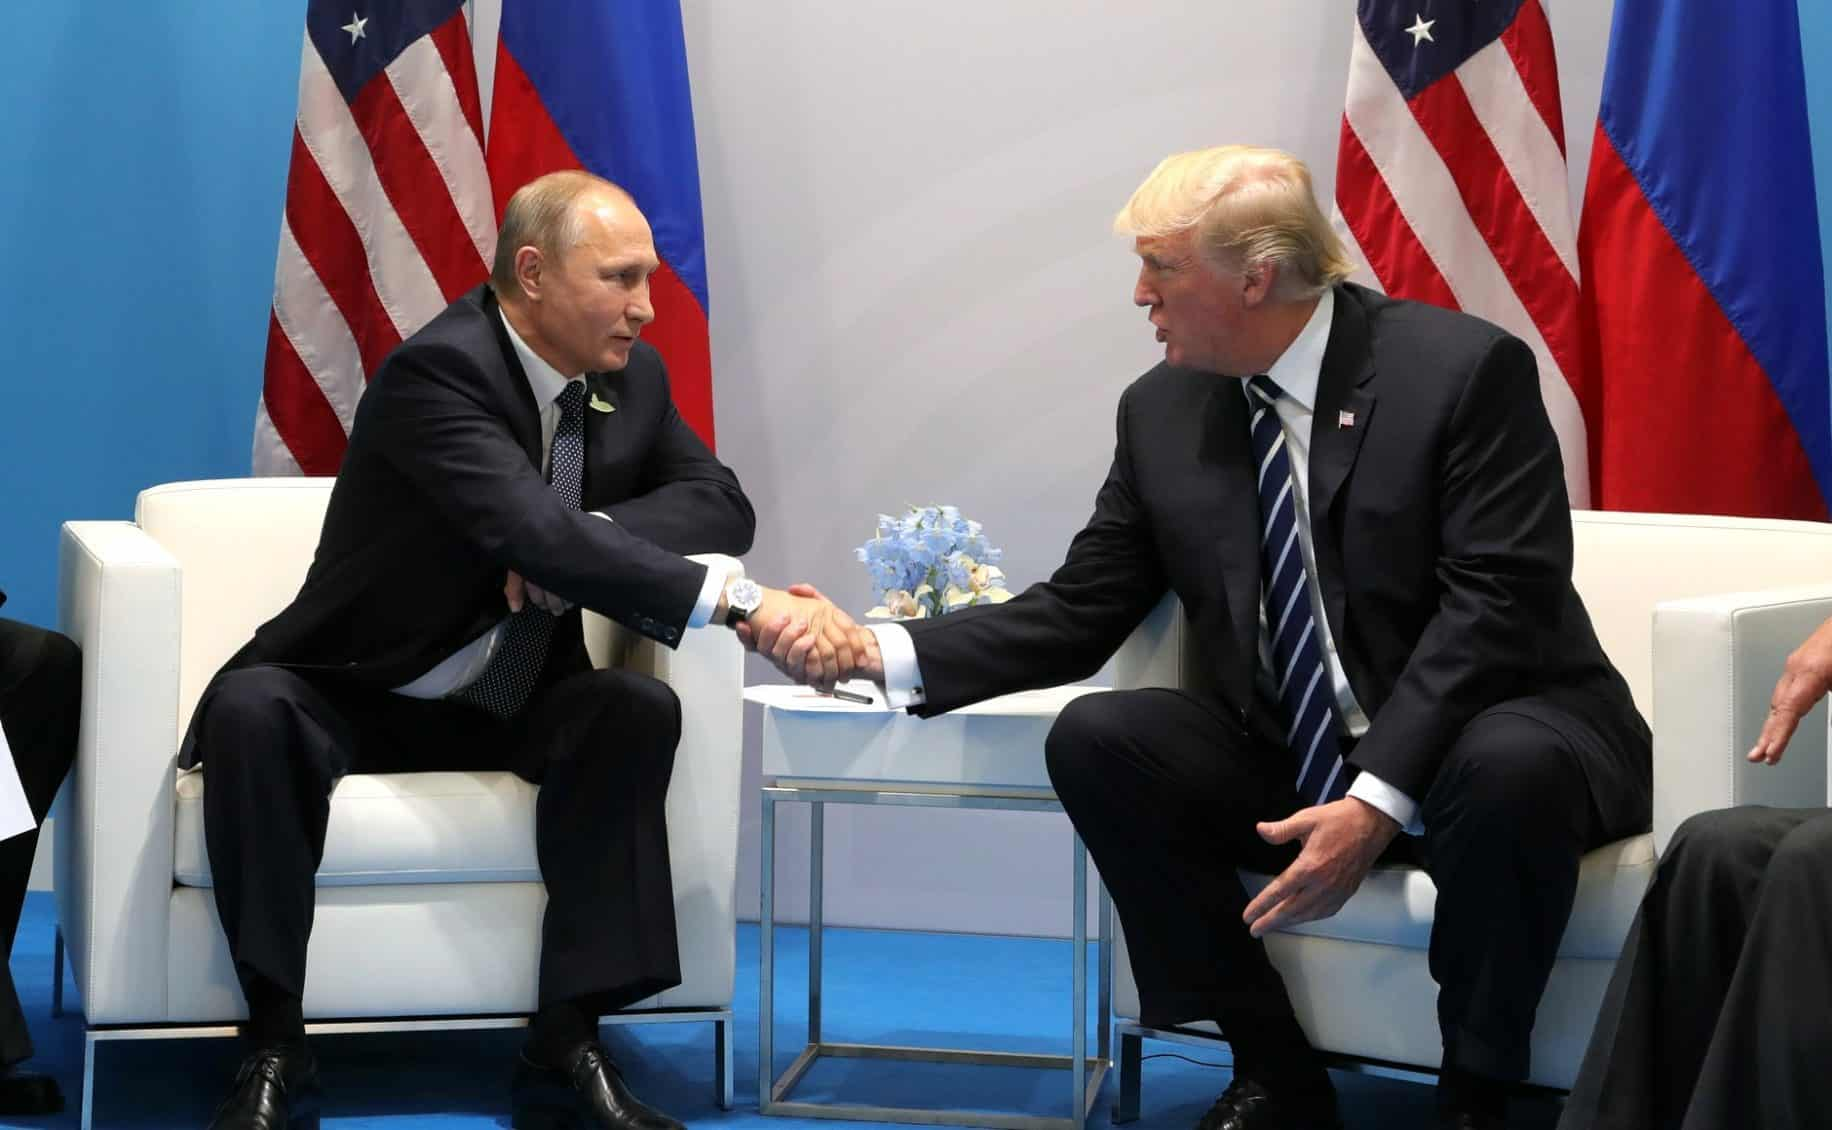 Trump says would be 'great thing' for Russia, Ukraine to reconcile